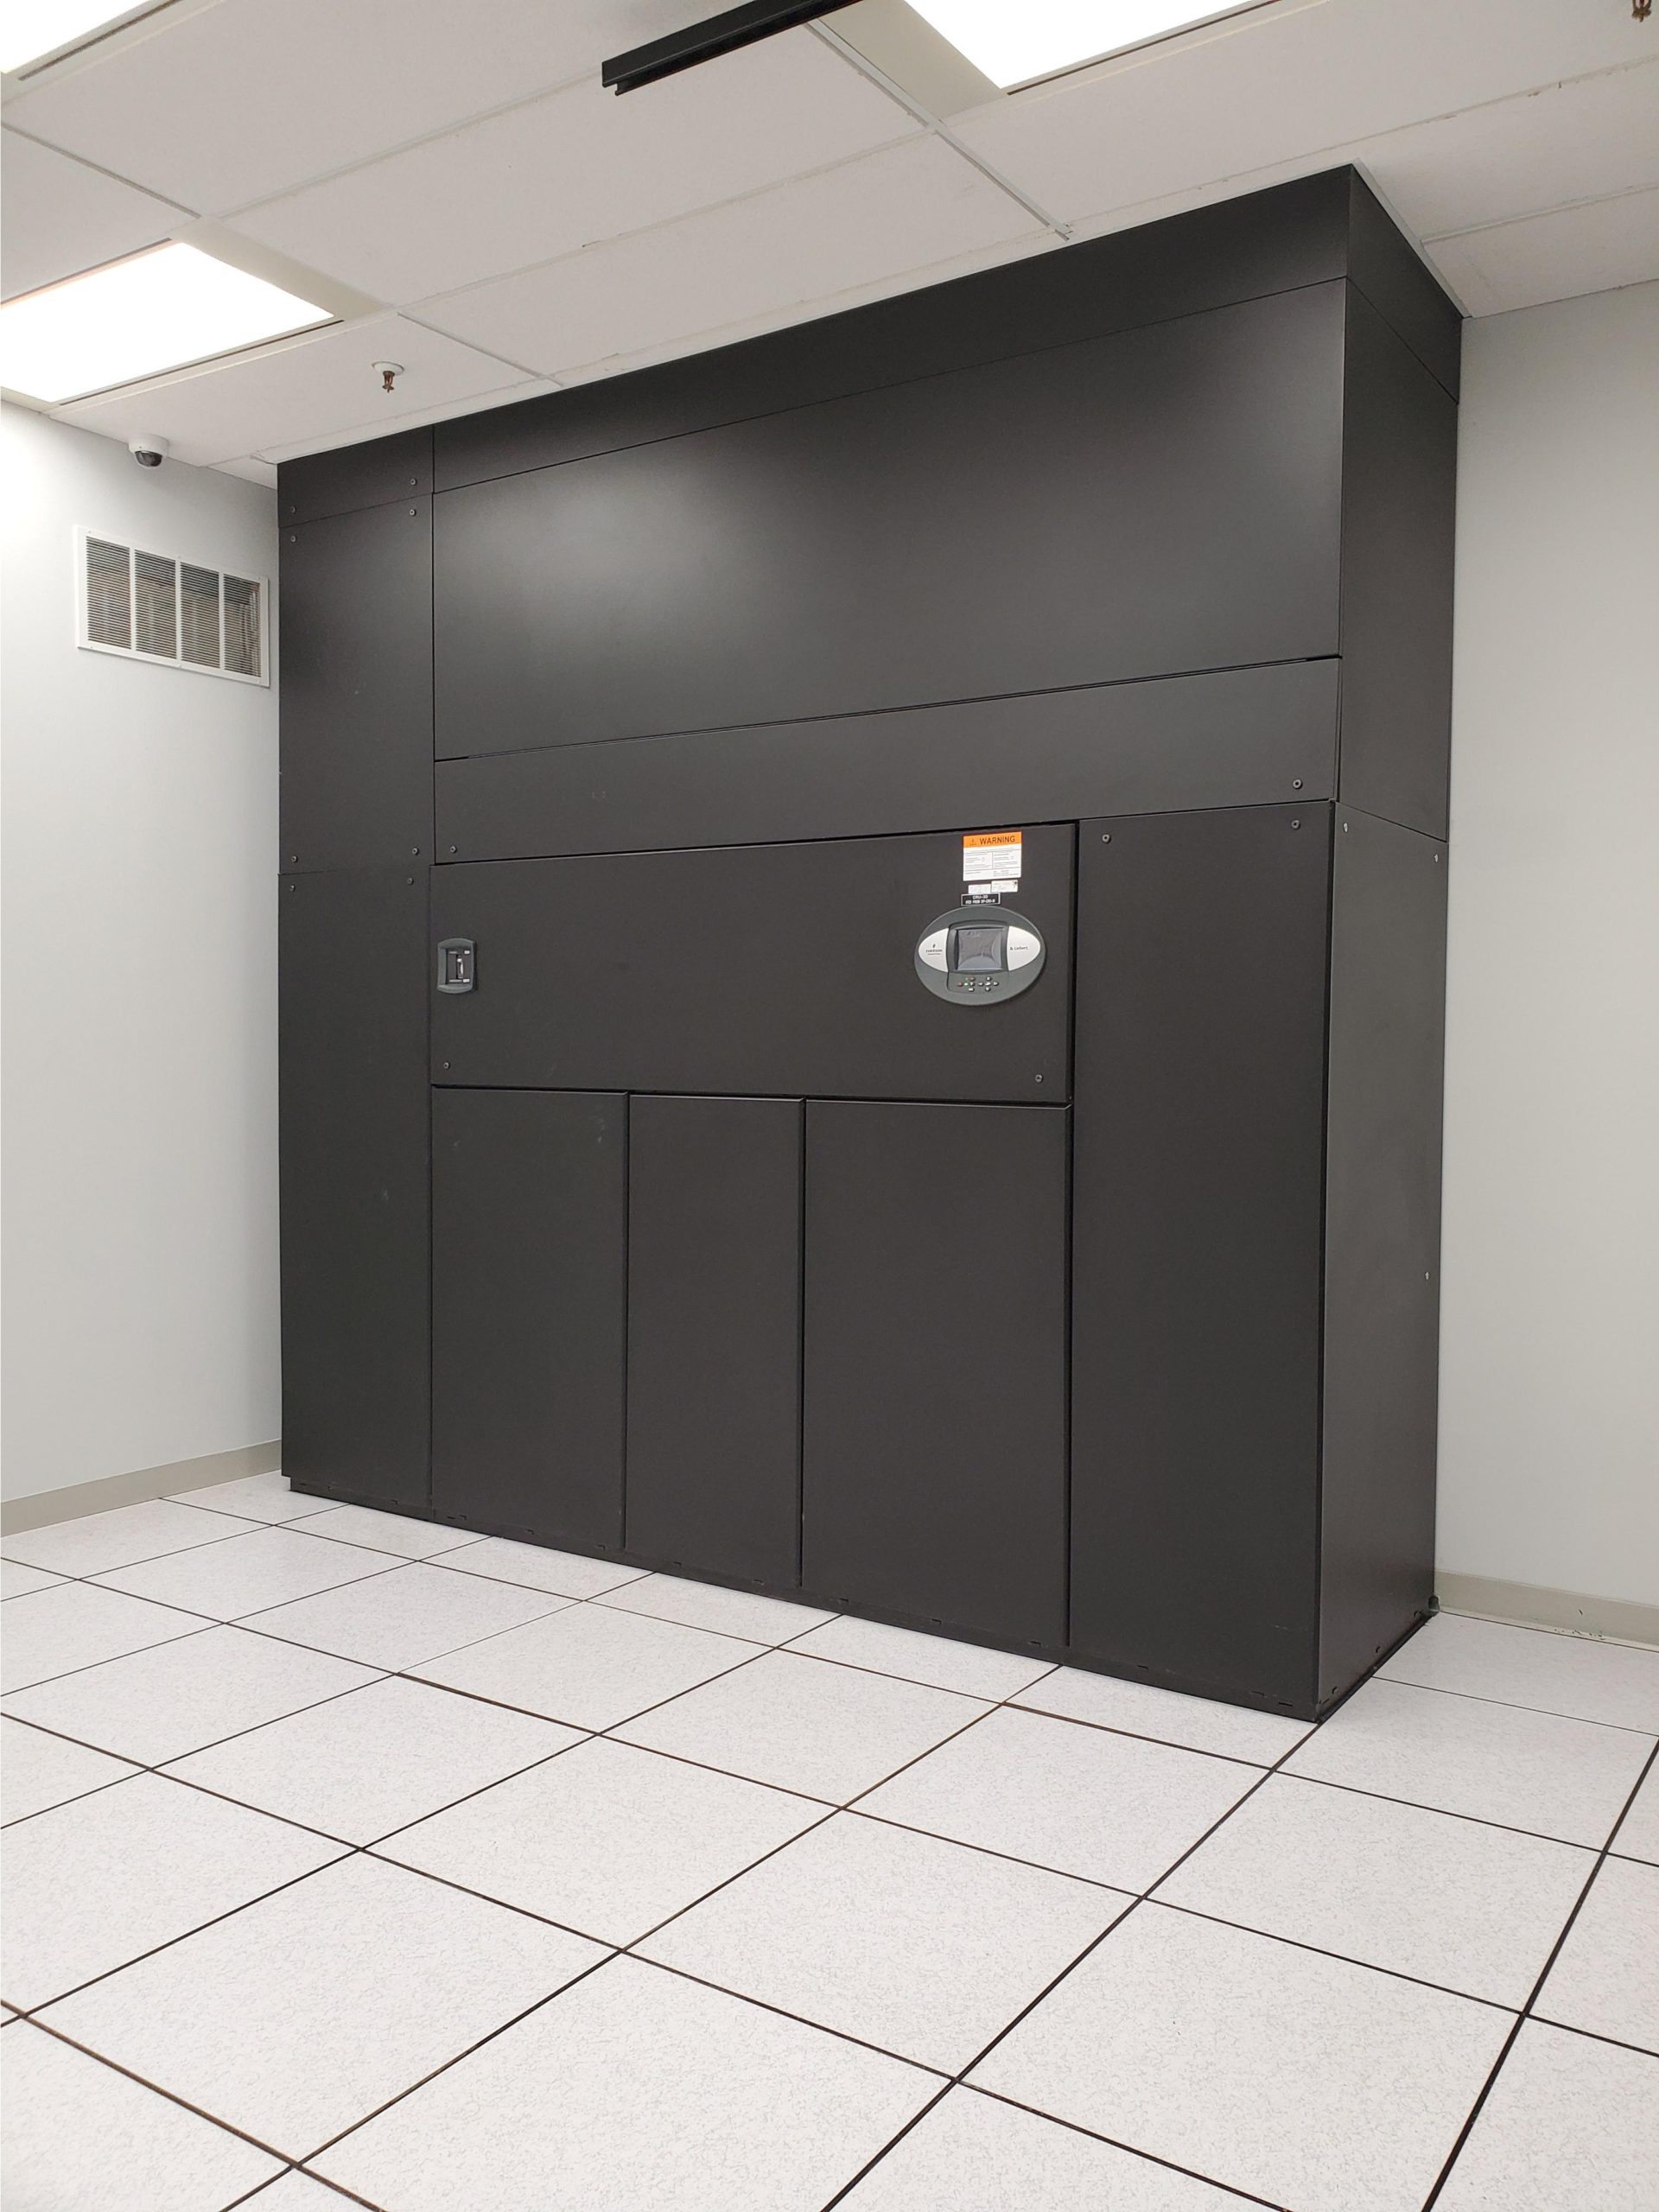 data centre hardware and security decorative